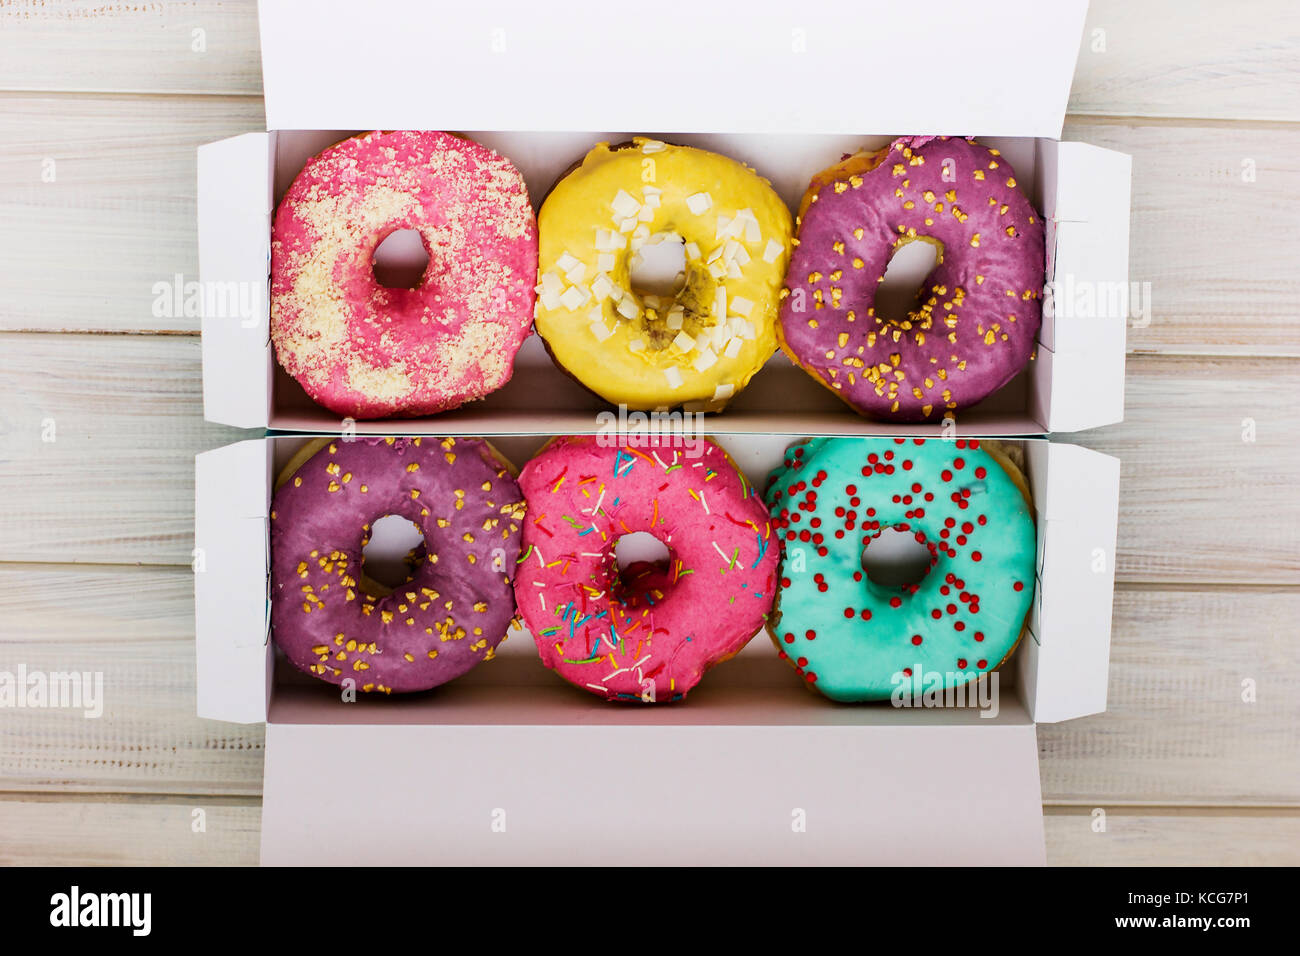 Colorful donuts in the cardboard box on the white wooden background - Stock Image